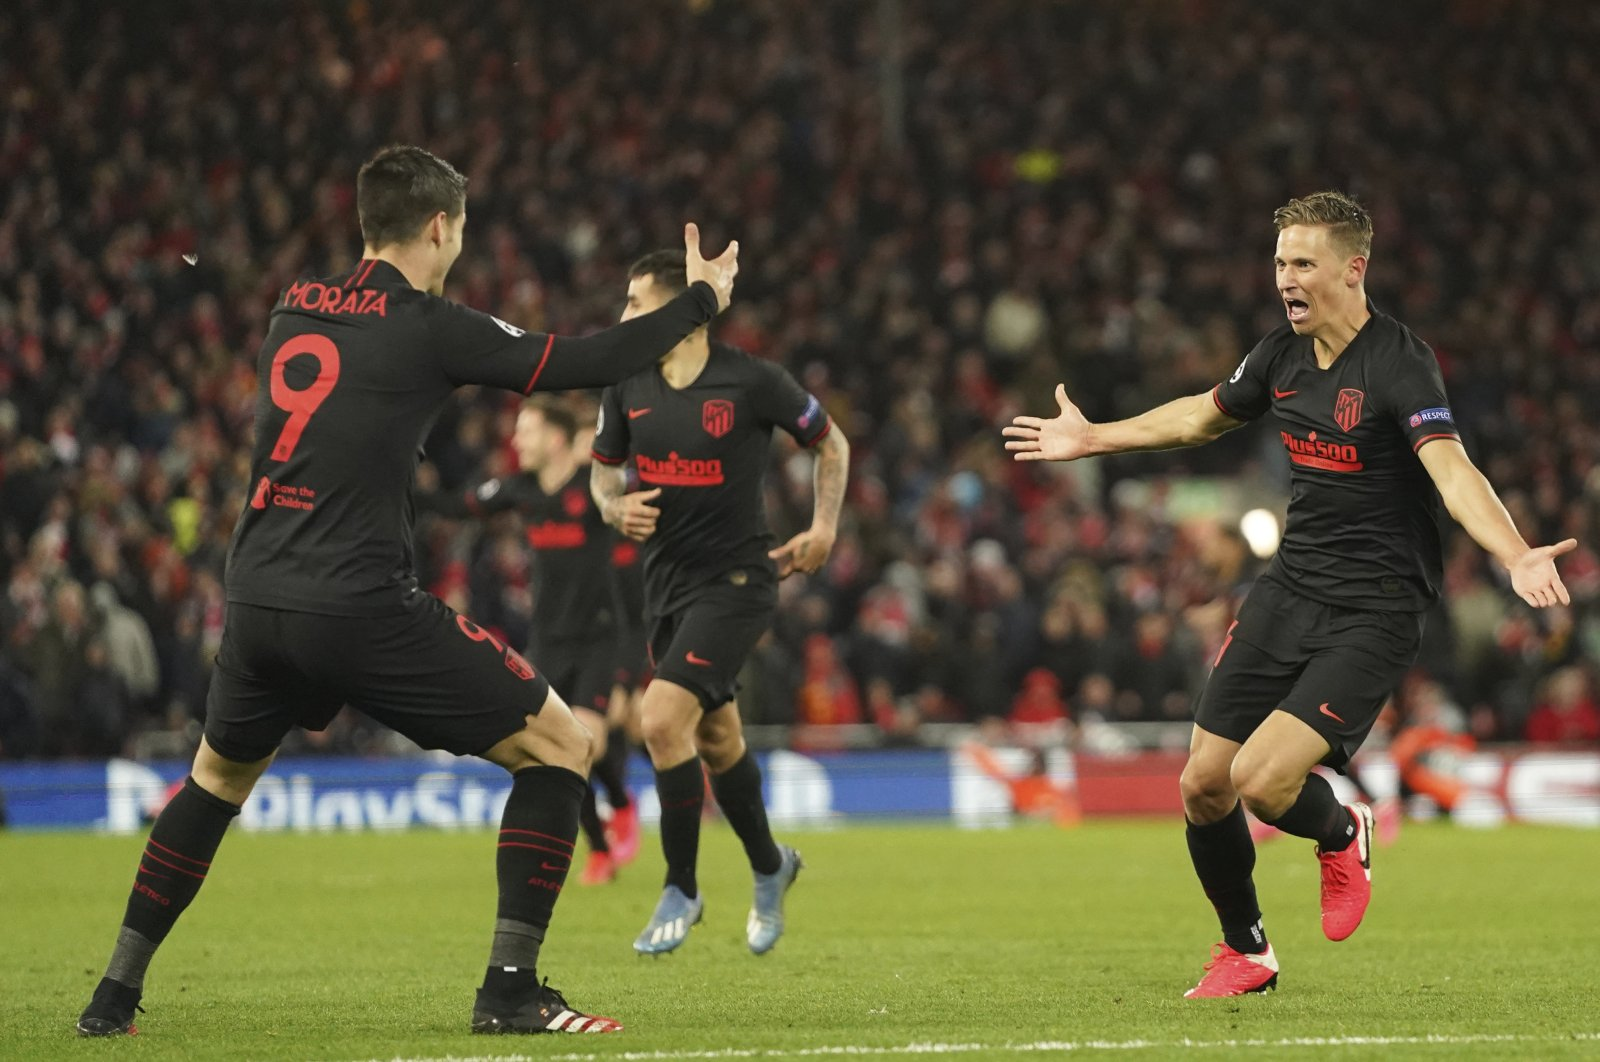 Atletico Madrid's Marcos Llorente, right, celebrates after scoring his side's second goal during a second leg, round of 16, Champions League soccer match between Liverpool and Atletico Madrid at Anfield stadium in Liverpool, England, Wednesday, March 11, 2020. (AP Photo)